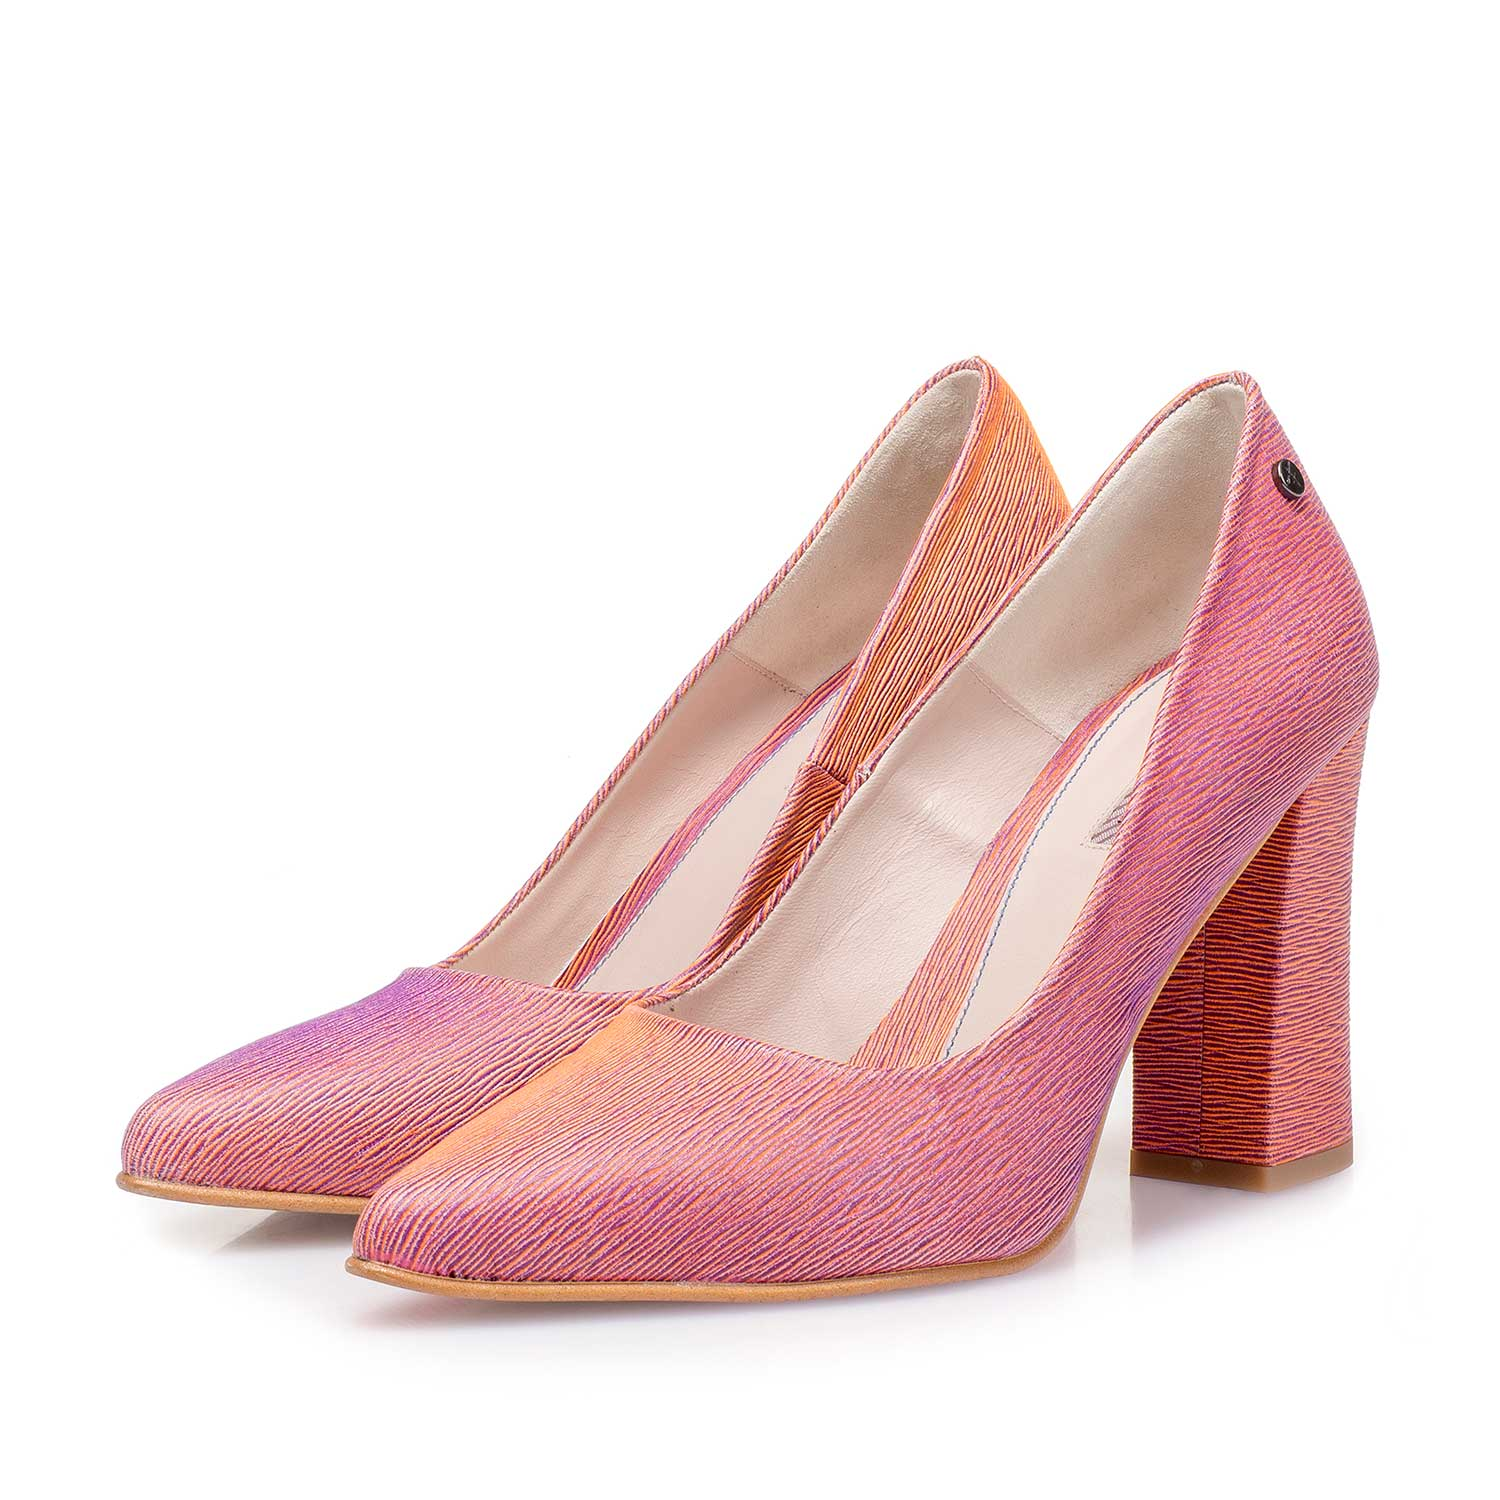 85519/08 - Coral red leather pumps with changing effect